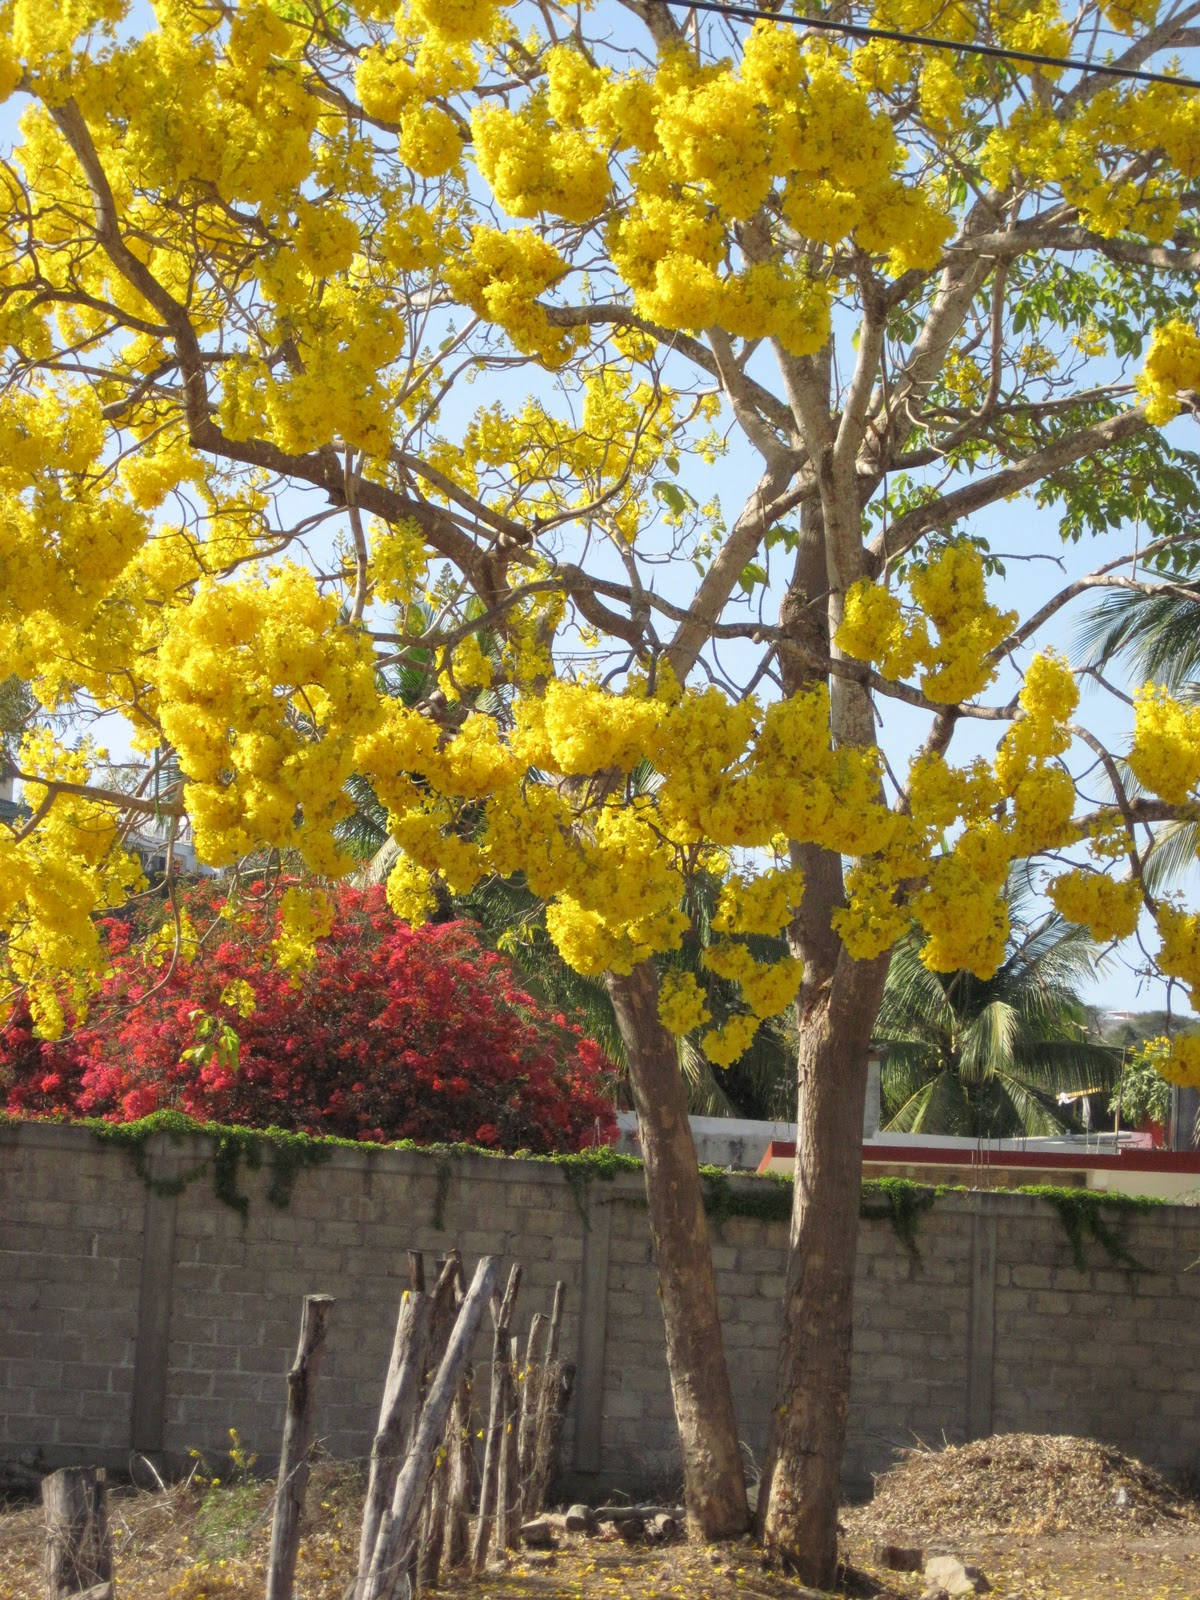 The Yellow Flower Tree